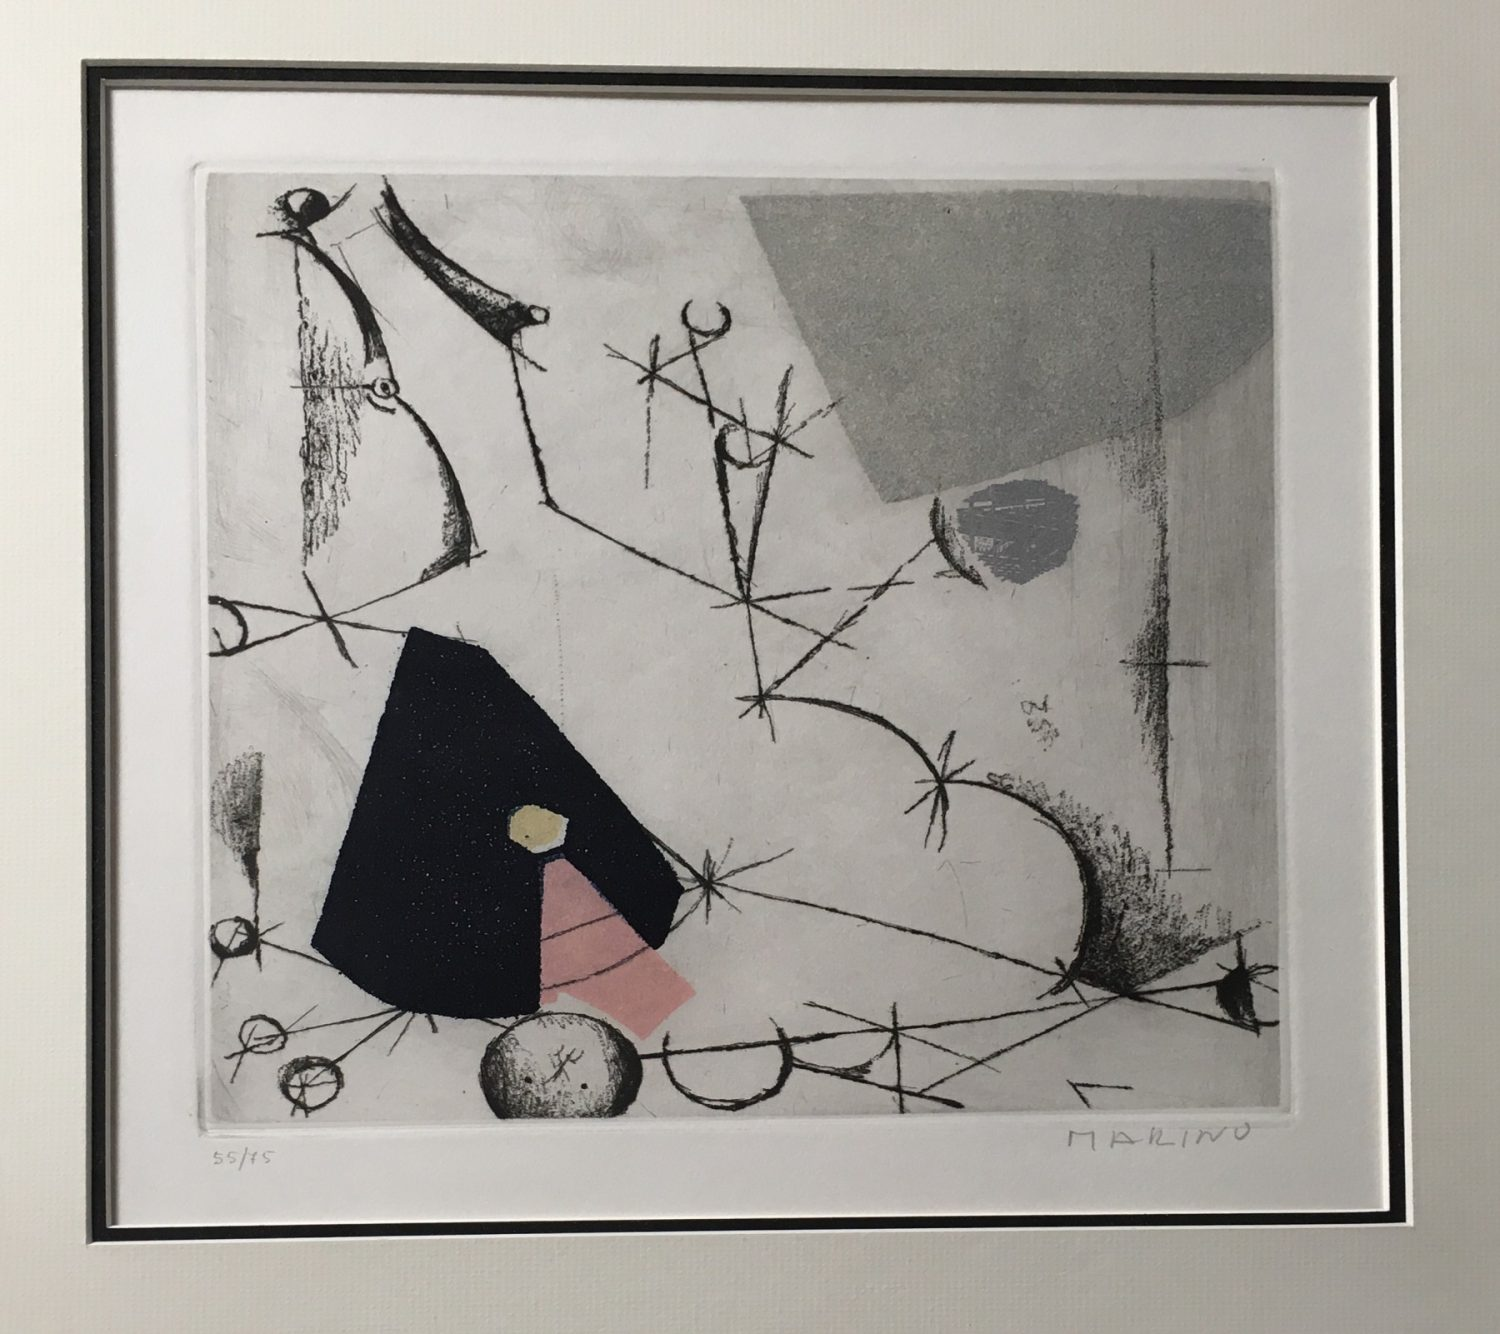 Mario-Marini-(La-ribalta)-1973-Signed-Framed-Art-Etching33